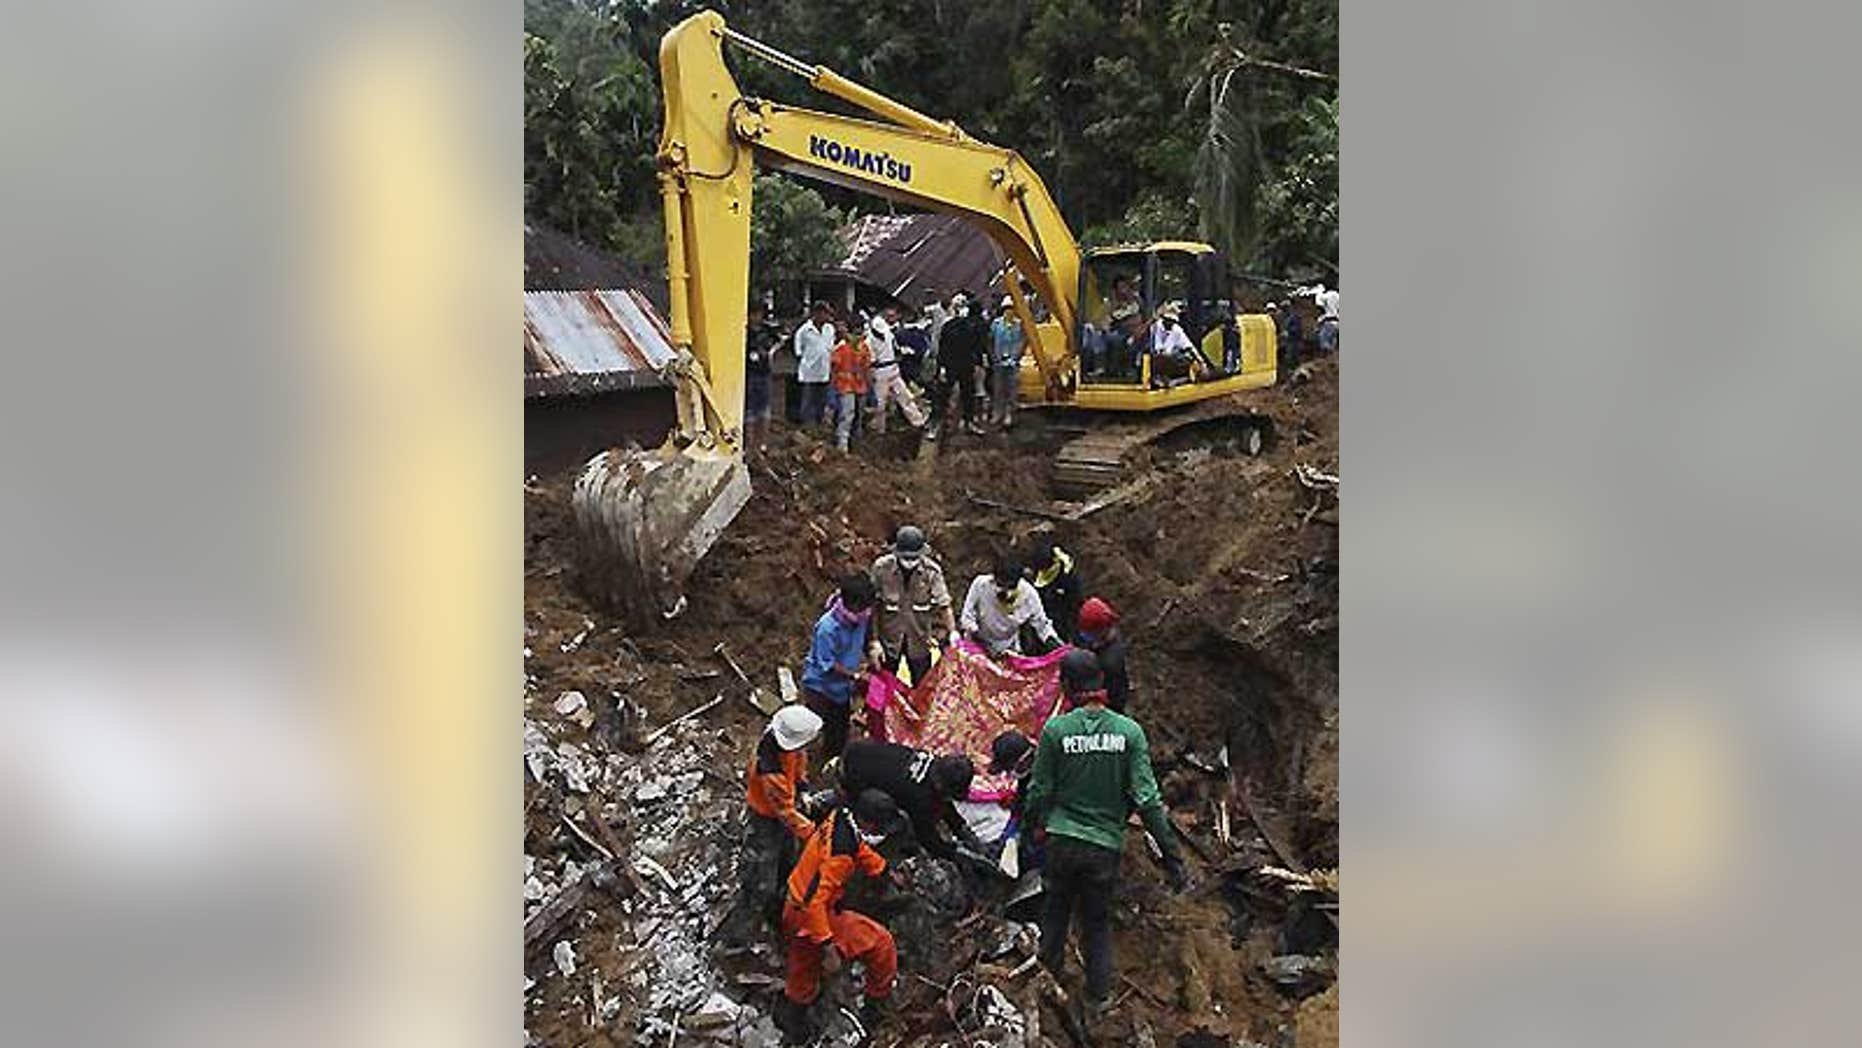 Oct. 4: Indonesian rescue volunteers cover a body before removing it from an area hit by landslides in the Sumatran Island village of Jumanak.